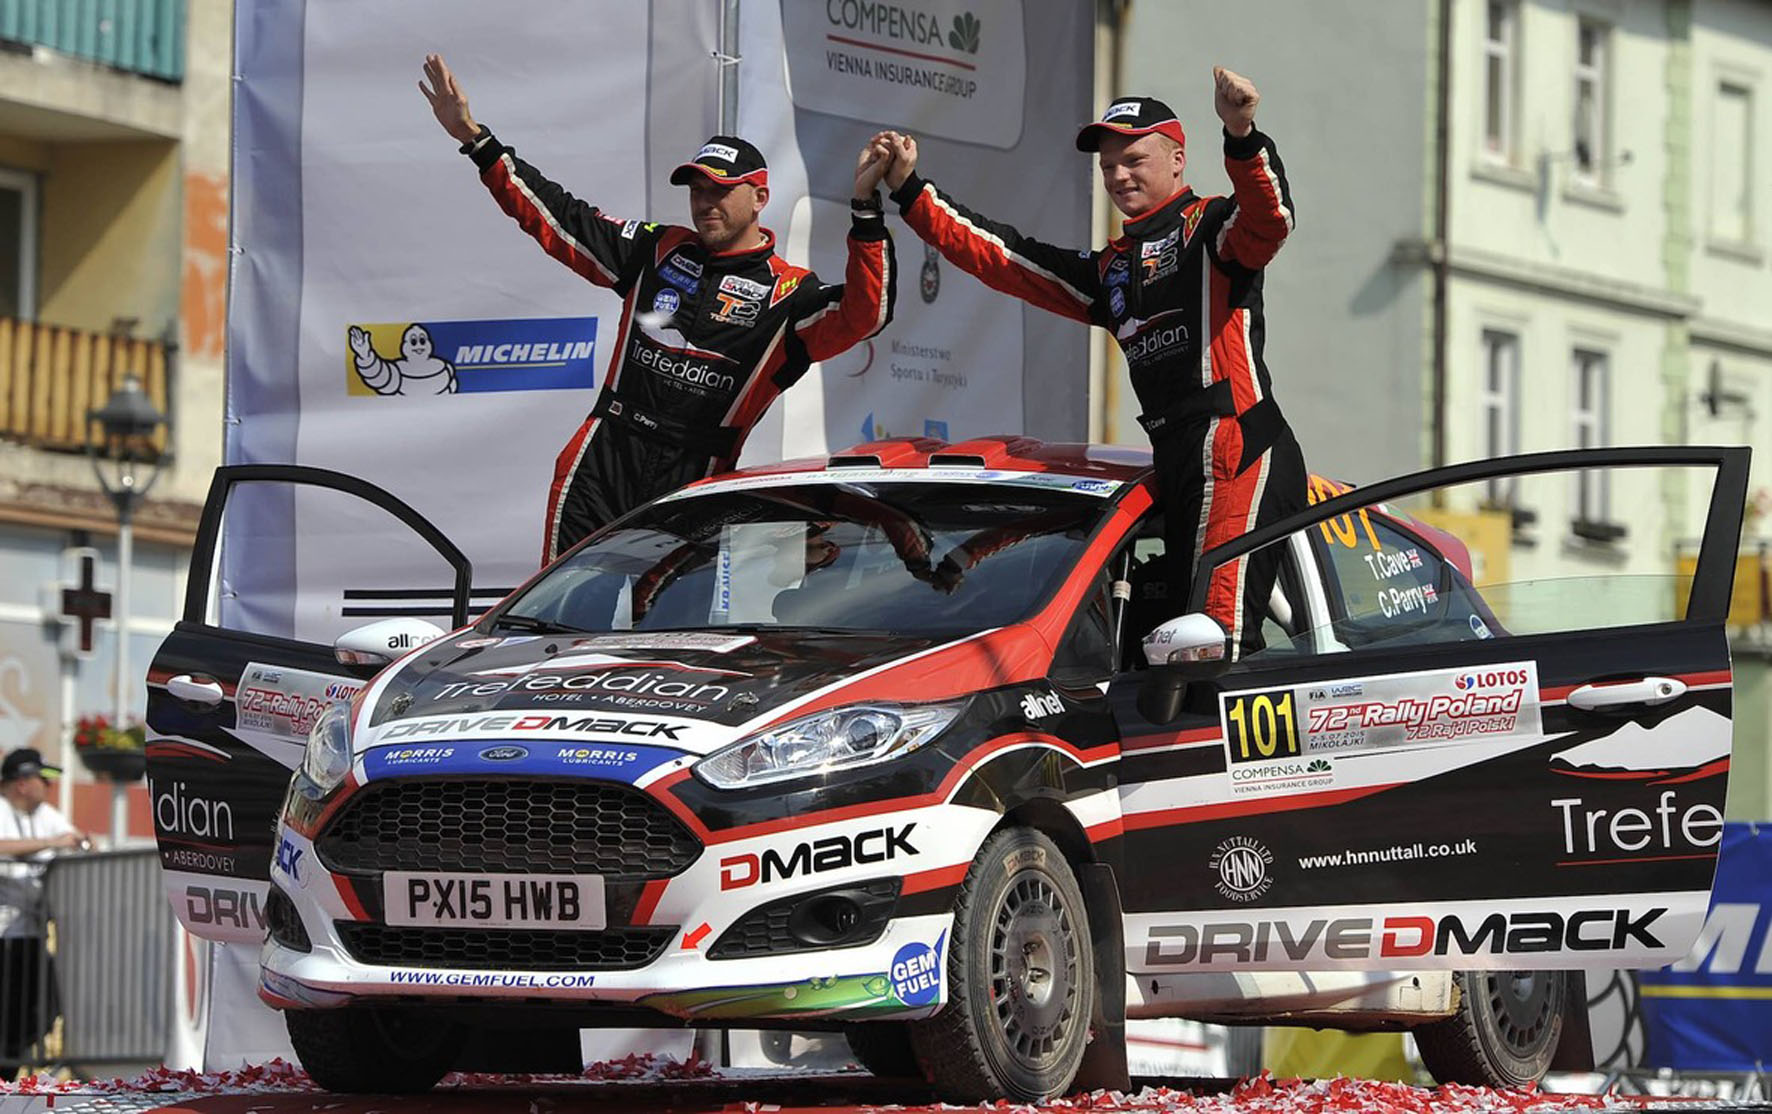 Super second for Cave and Parry after battle in Poland